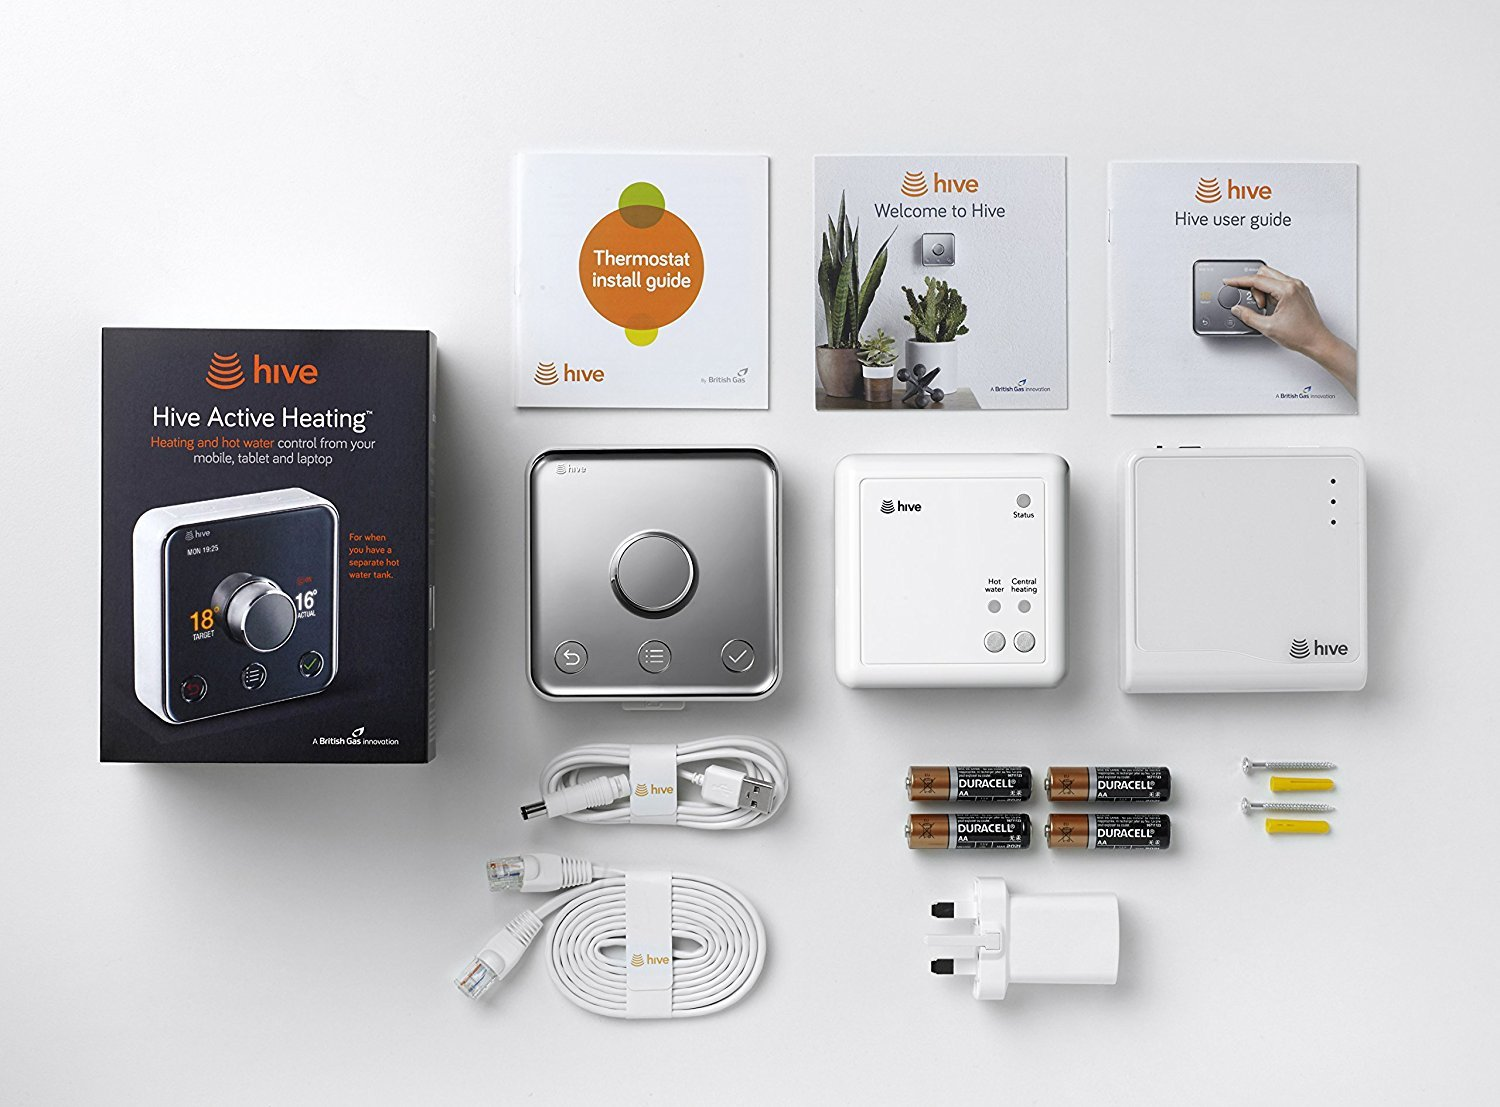 Hive Active Heating And Hot Water With Professional Installation, Works With Amazon Alexa by Hive (Image #9)